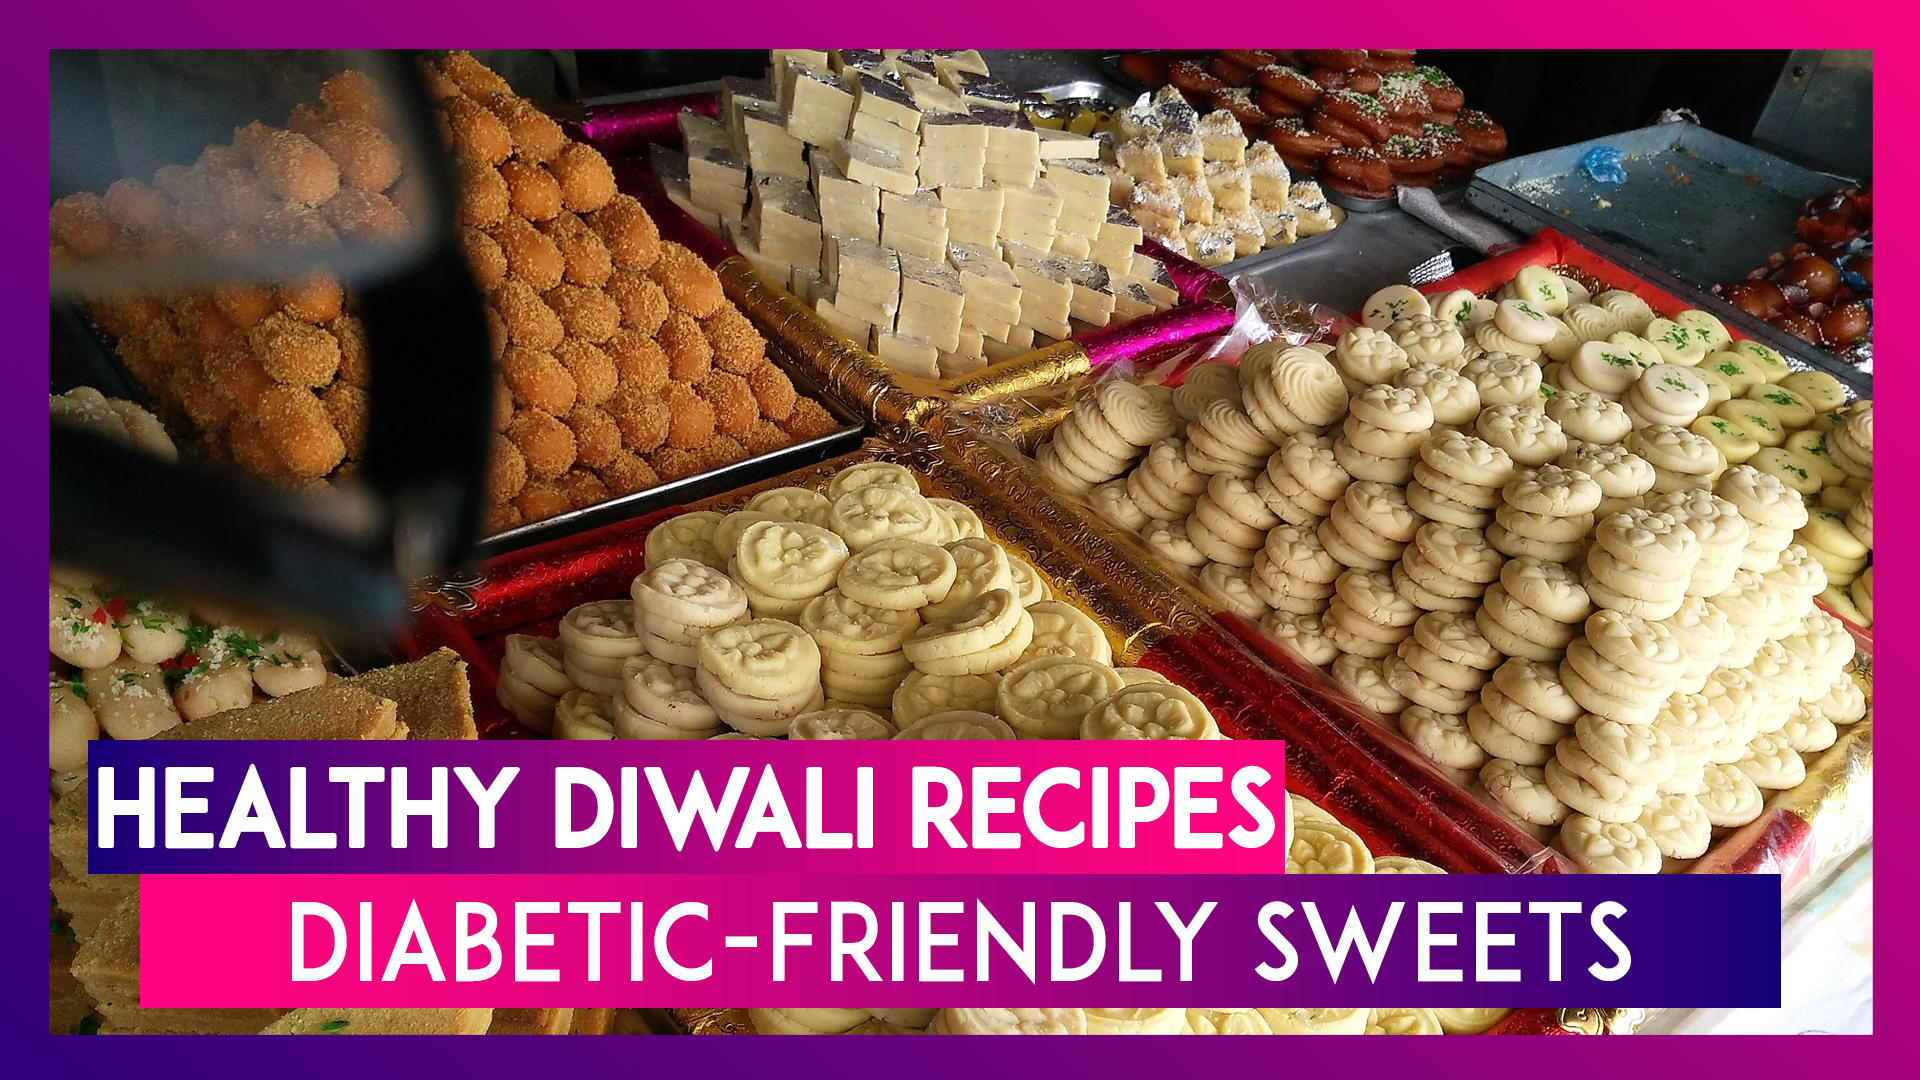 Diwali 2019 Healthy Recipes: Low-Calorie Sweets For People With Diabetes